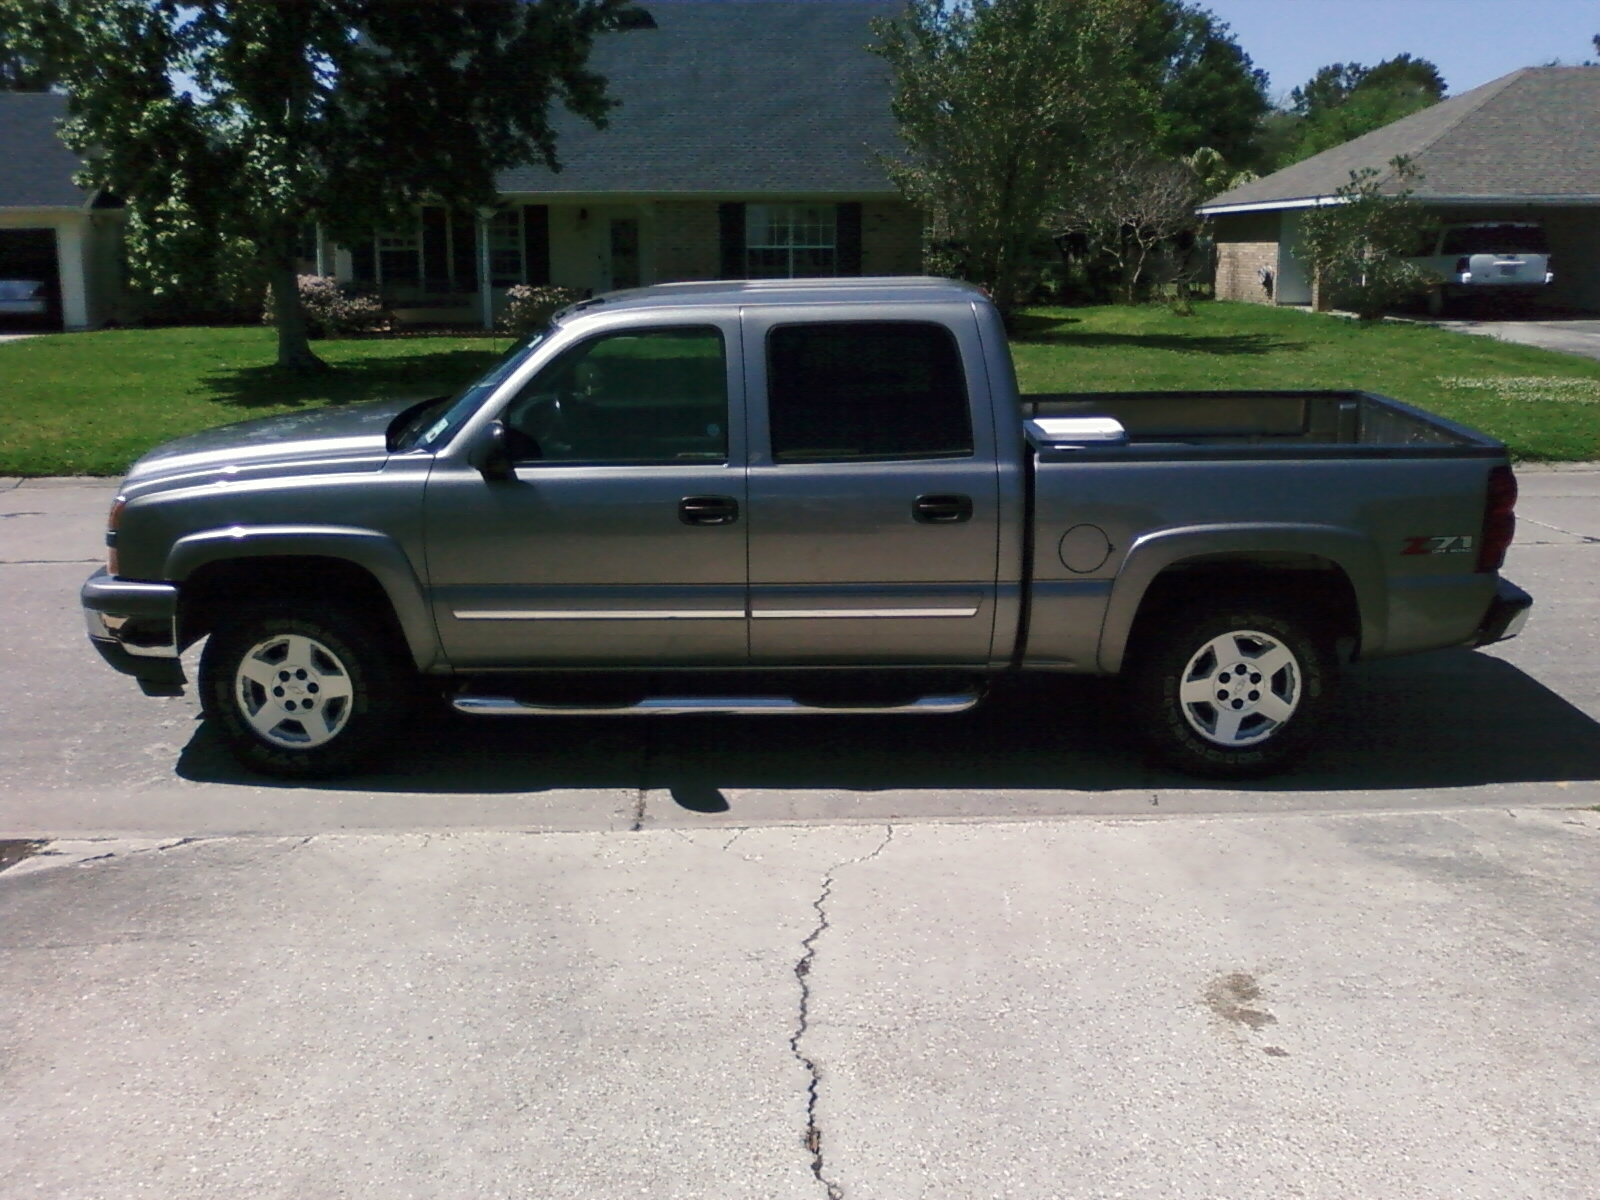 bigbodysnoddy11 2006 chevrolet silverado classic 1500 crew cab specs photos modification. Black Bedroom Furniture Sets. Home Design Ideas